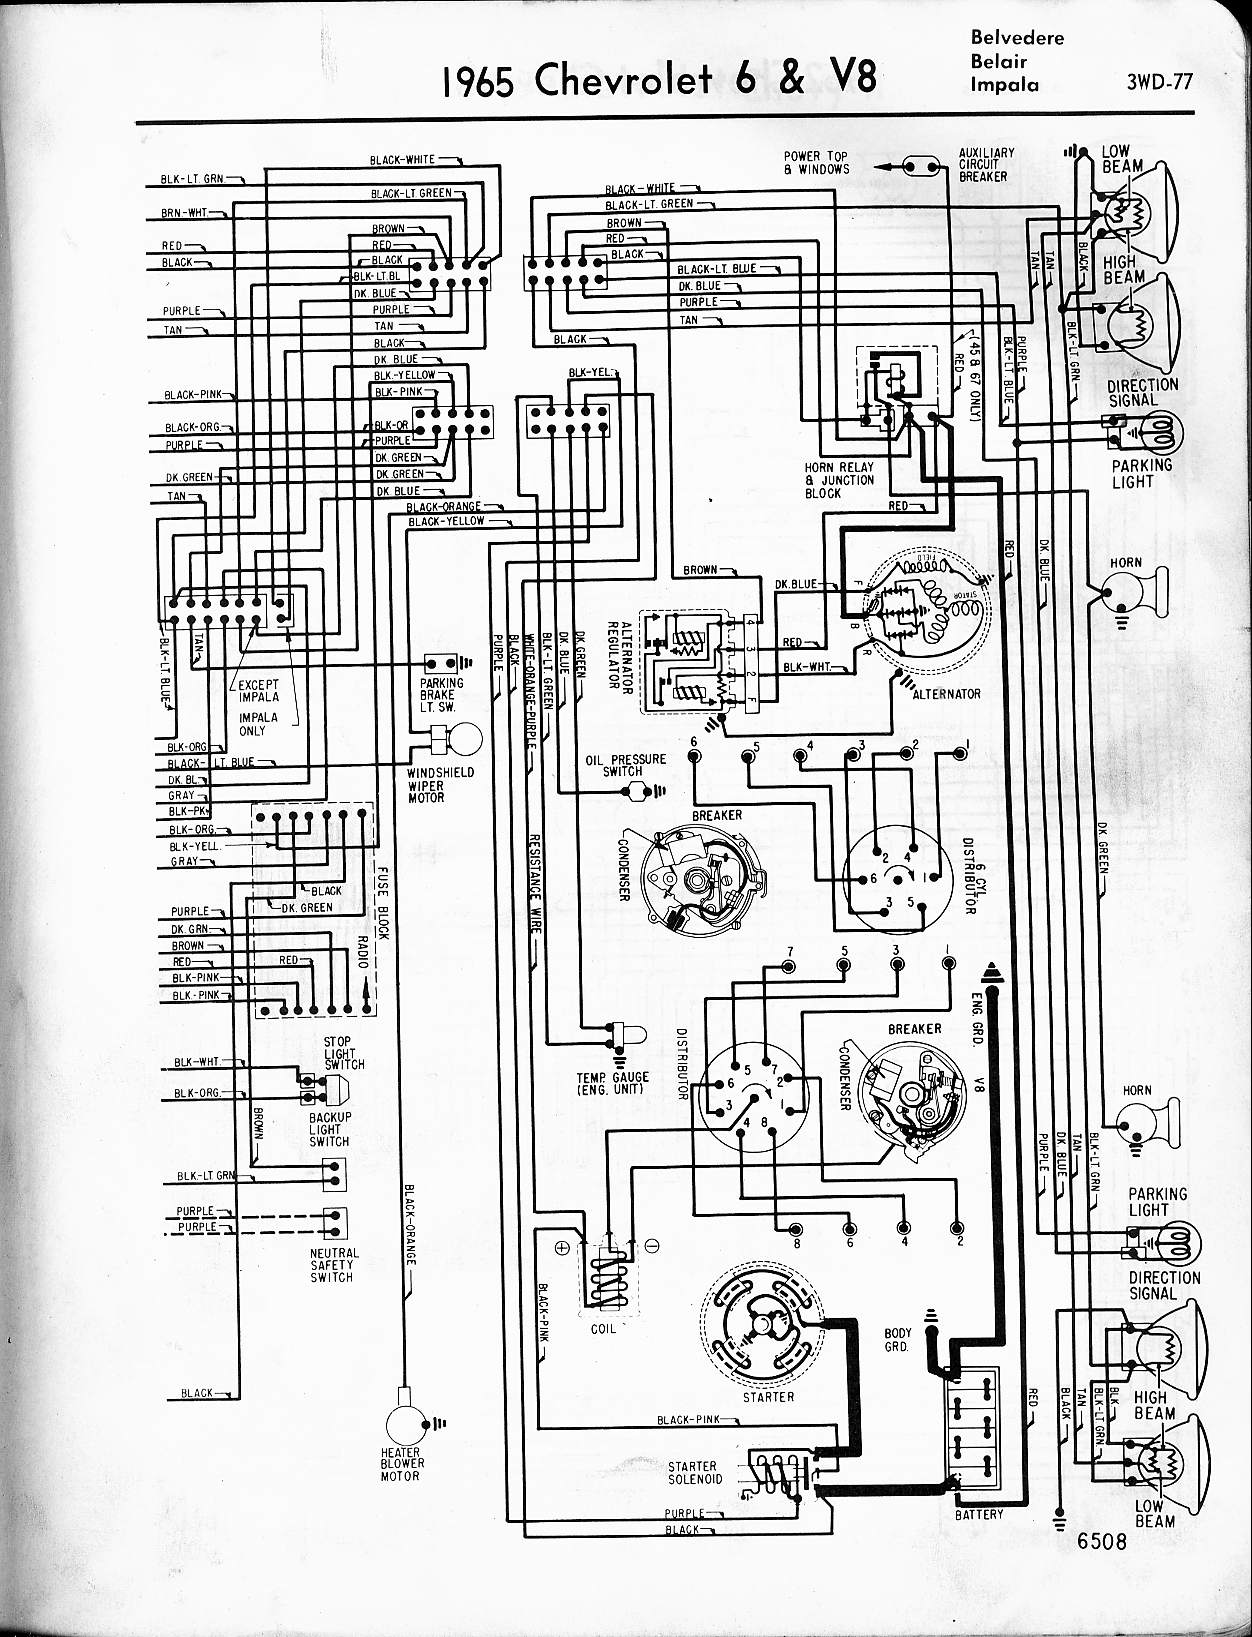 MWireChev65_3WD 077 1970 chevy truck fuse block diagram wiring diagram simonand 06 Chevy Impala Fuse Box at aneh.co